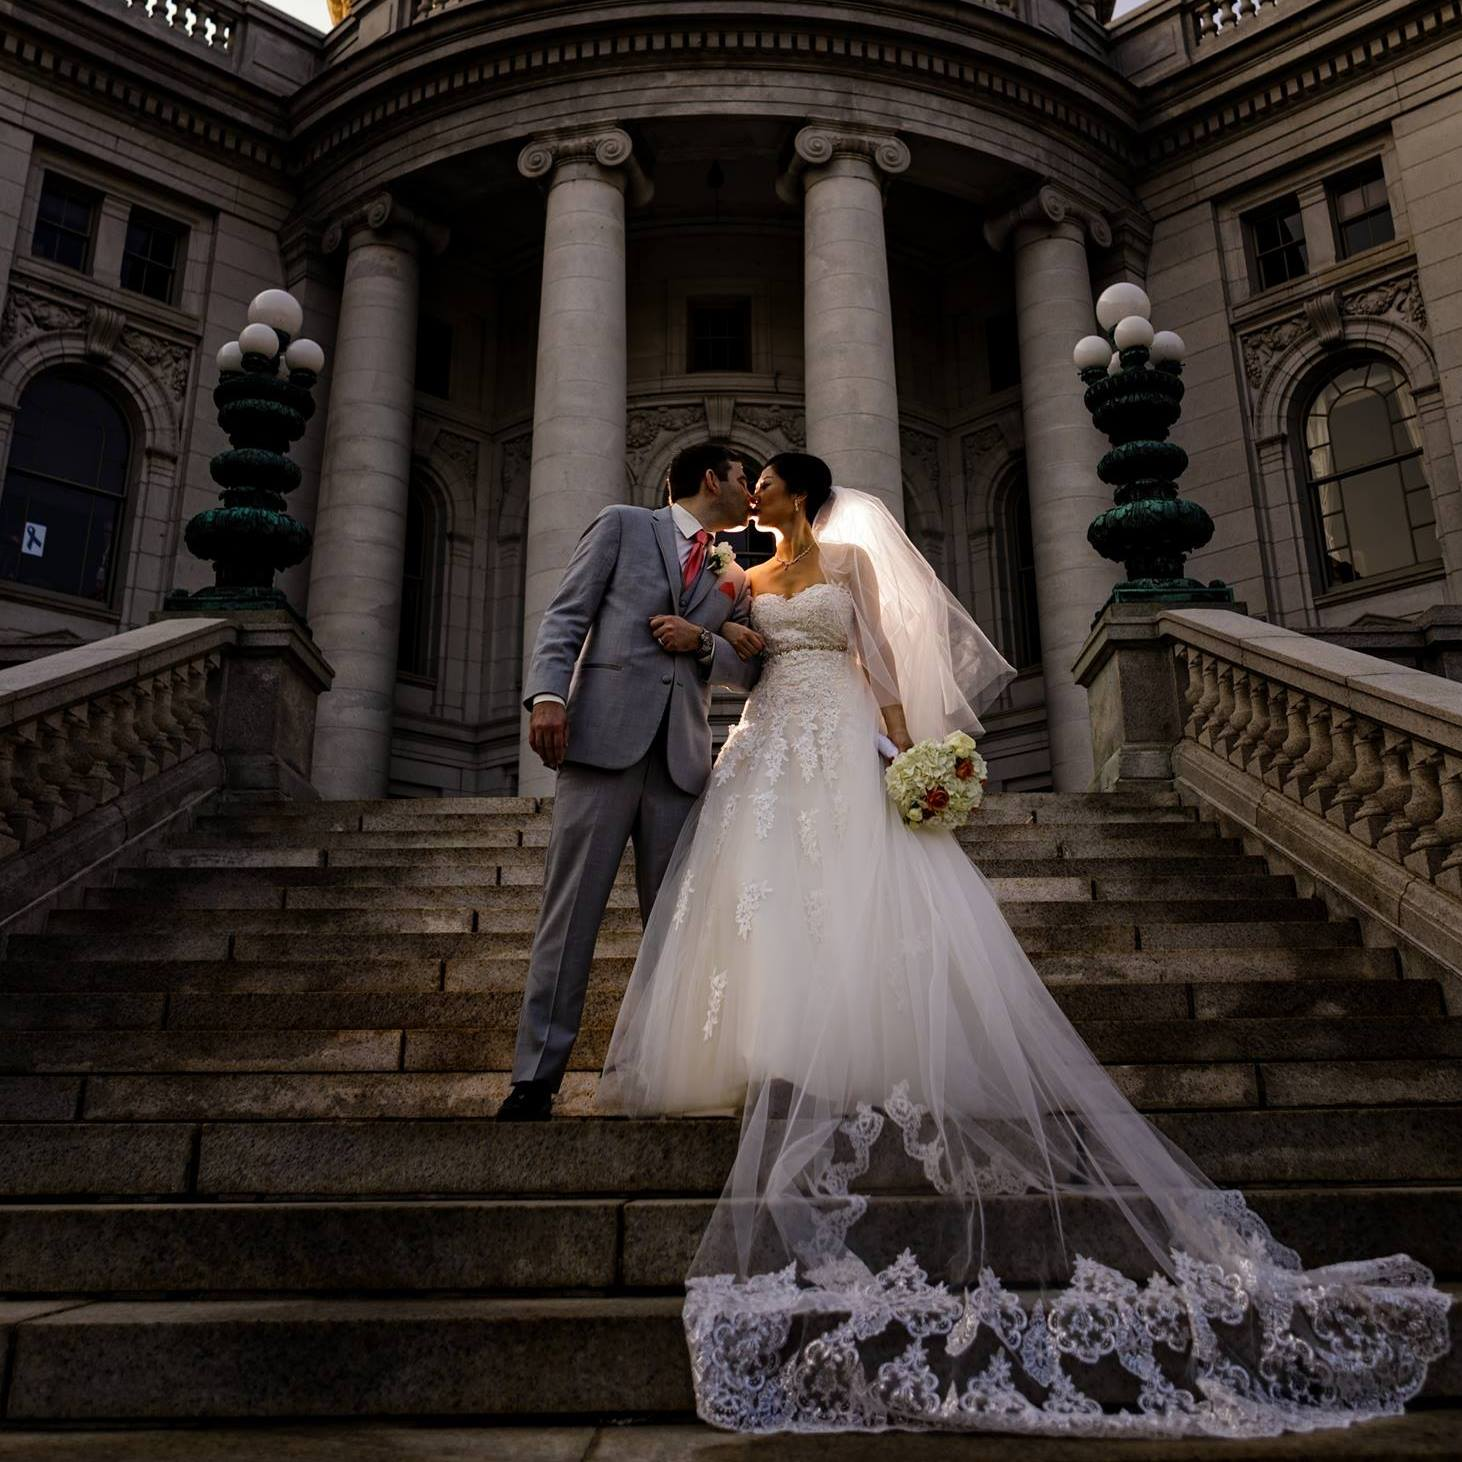 Photo Credit: Moments Photography by Dr Rob